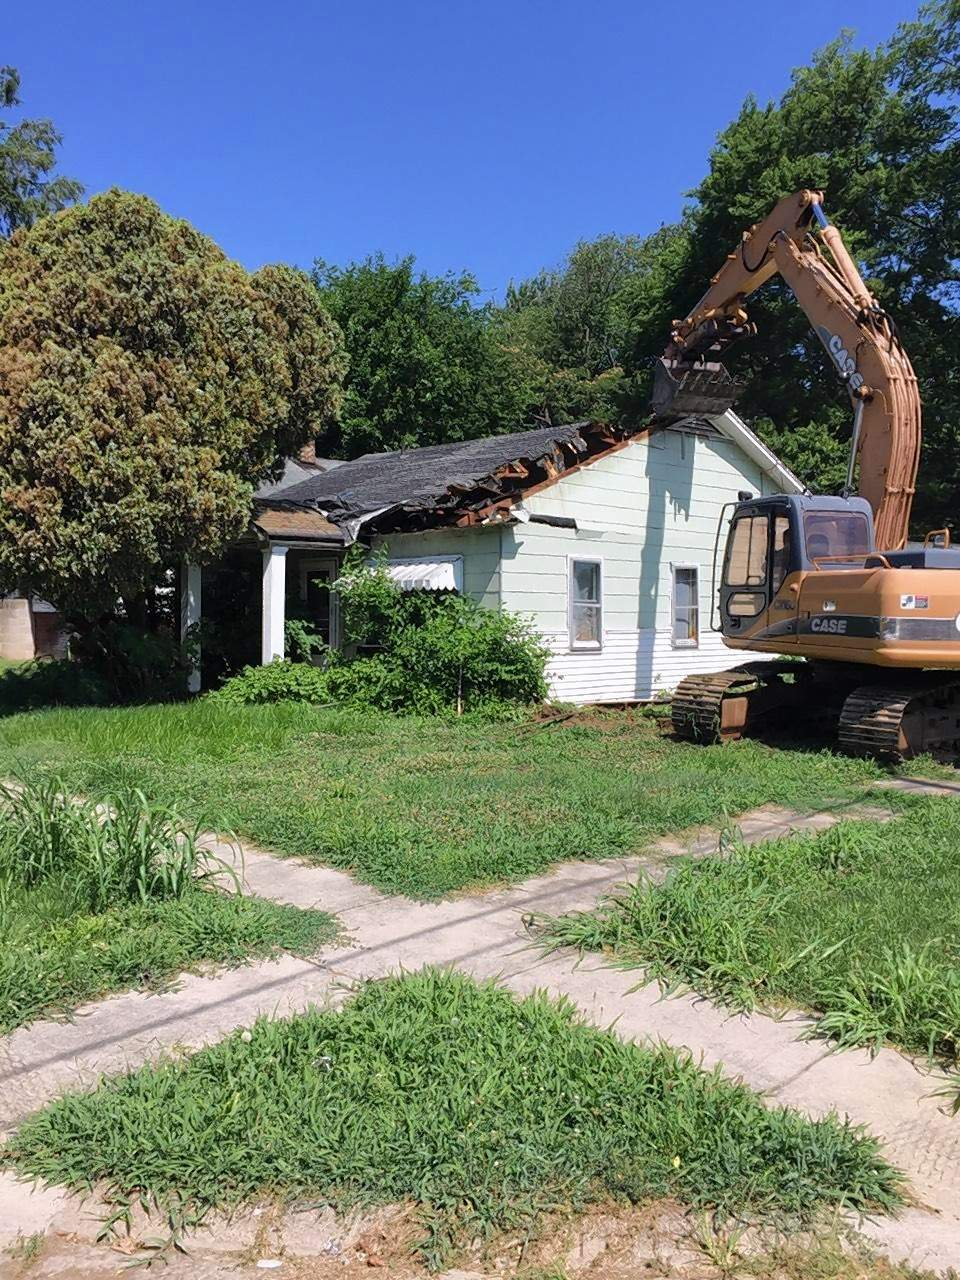 A house on South Raymond Street in Harrisburg is torn down by city workers on Monday, one of two houses demolished in the city's effort to tear down dangerous, derelict homes. McPeek said 18 more will be torn down in Harrisburg this year.